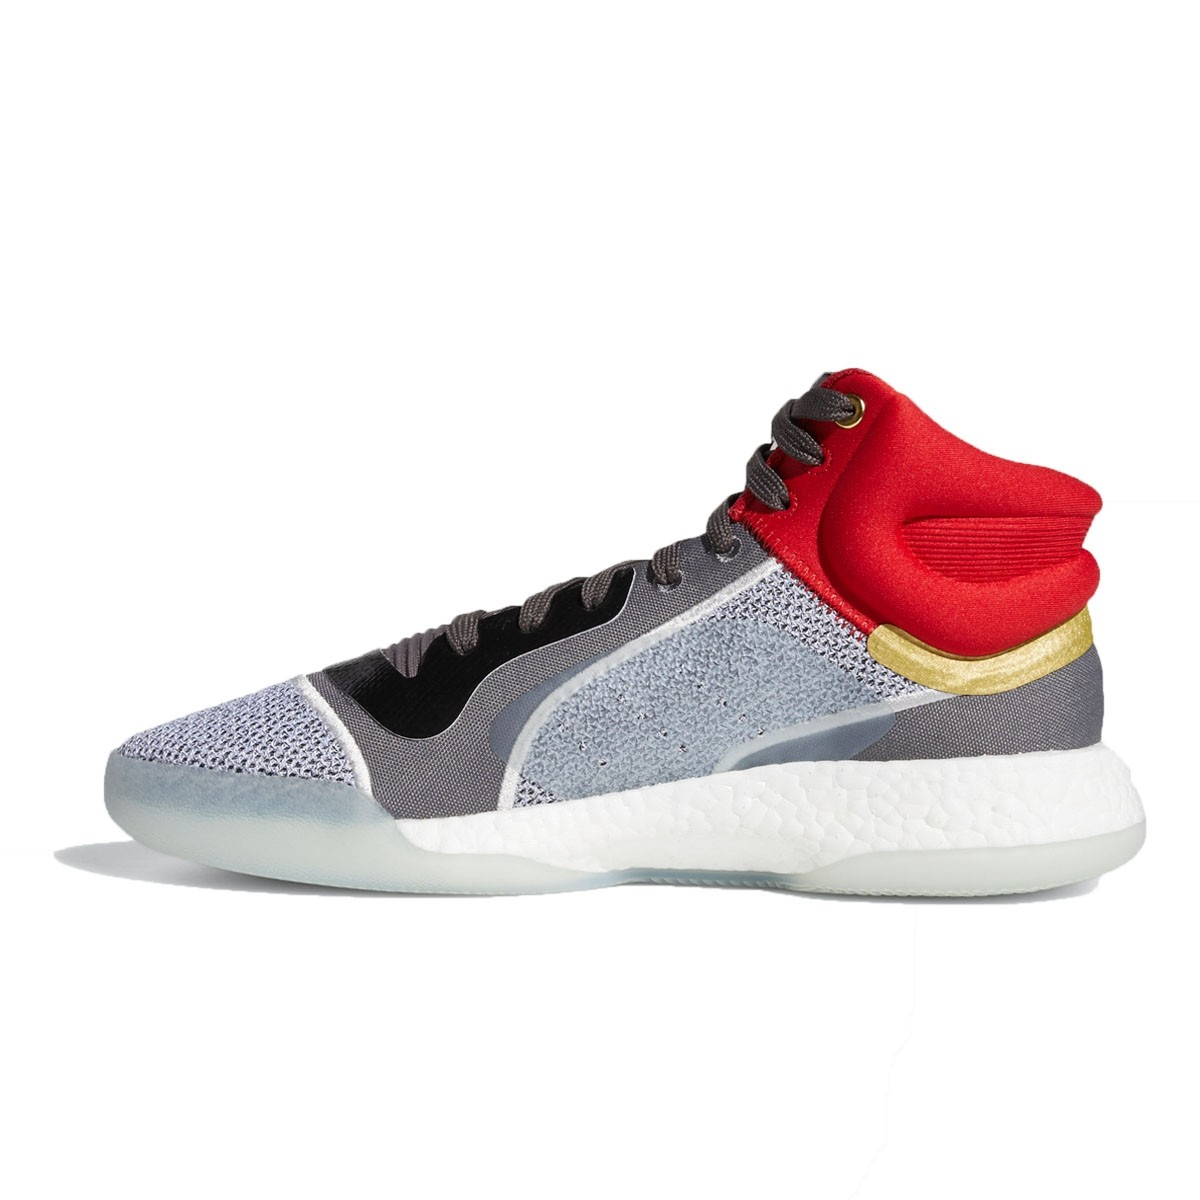 0bf3d2bd1d3 Buy ADIDAS Marquee Boost  Thor  Basketball shoes   sneakers